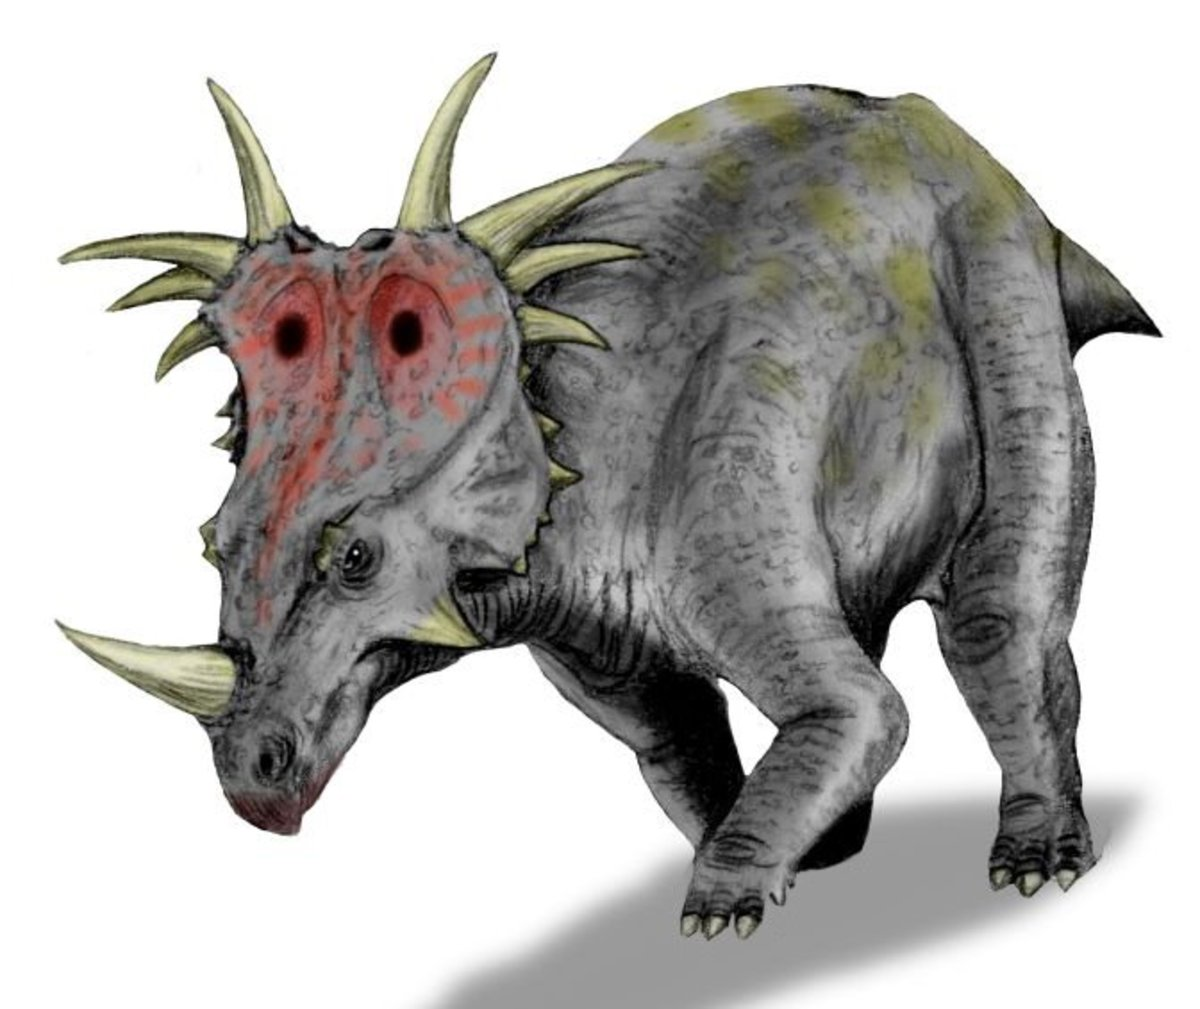 This is Styracosaurus, a ceratopsian dinosaur that matches the description of Ngoubou.